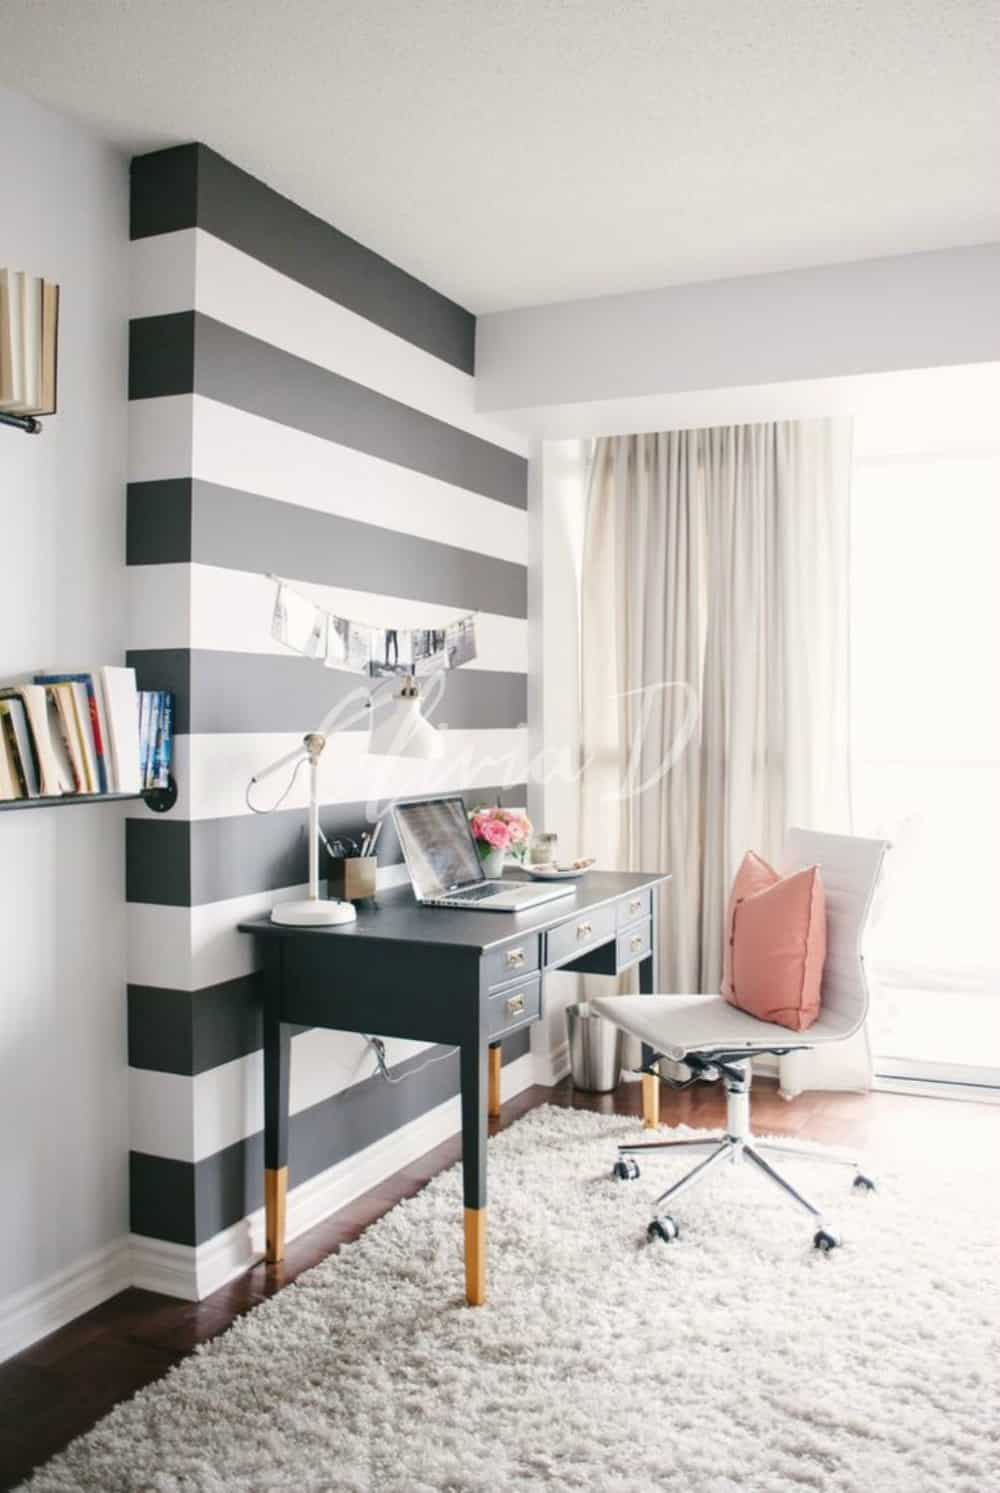 Fashionable home office with a striped feature wall